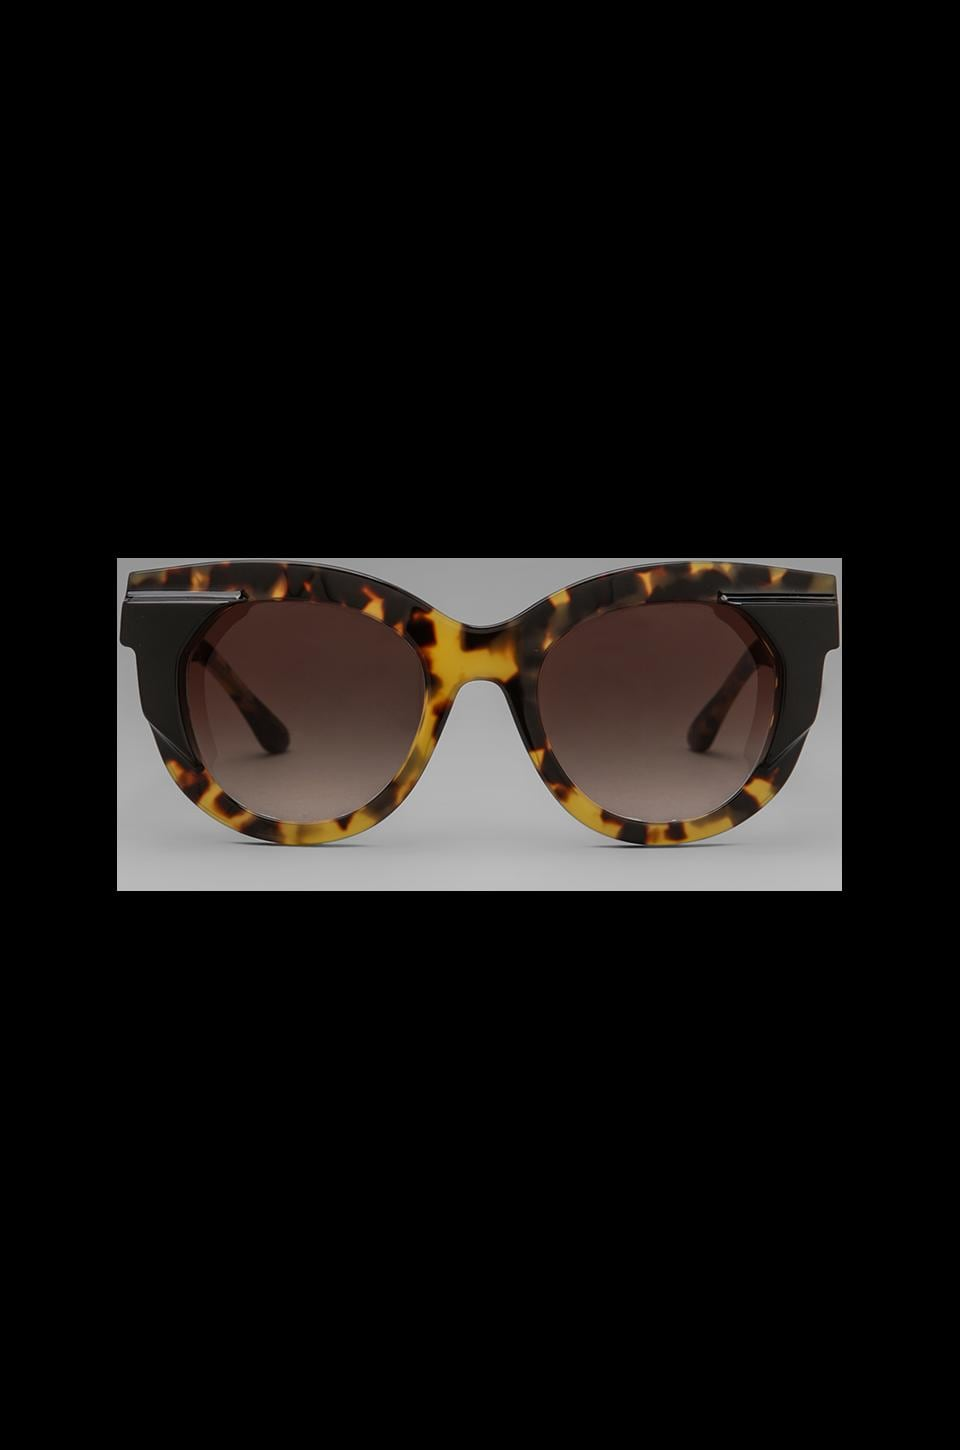 Thierry Lasry Slutty Sunglasses in Future Tort